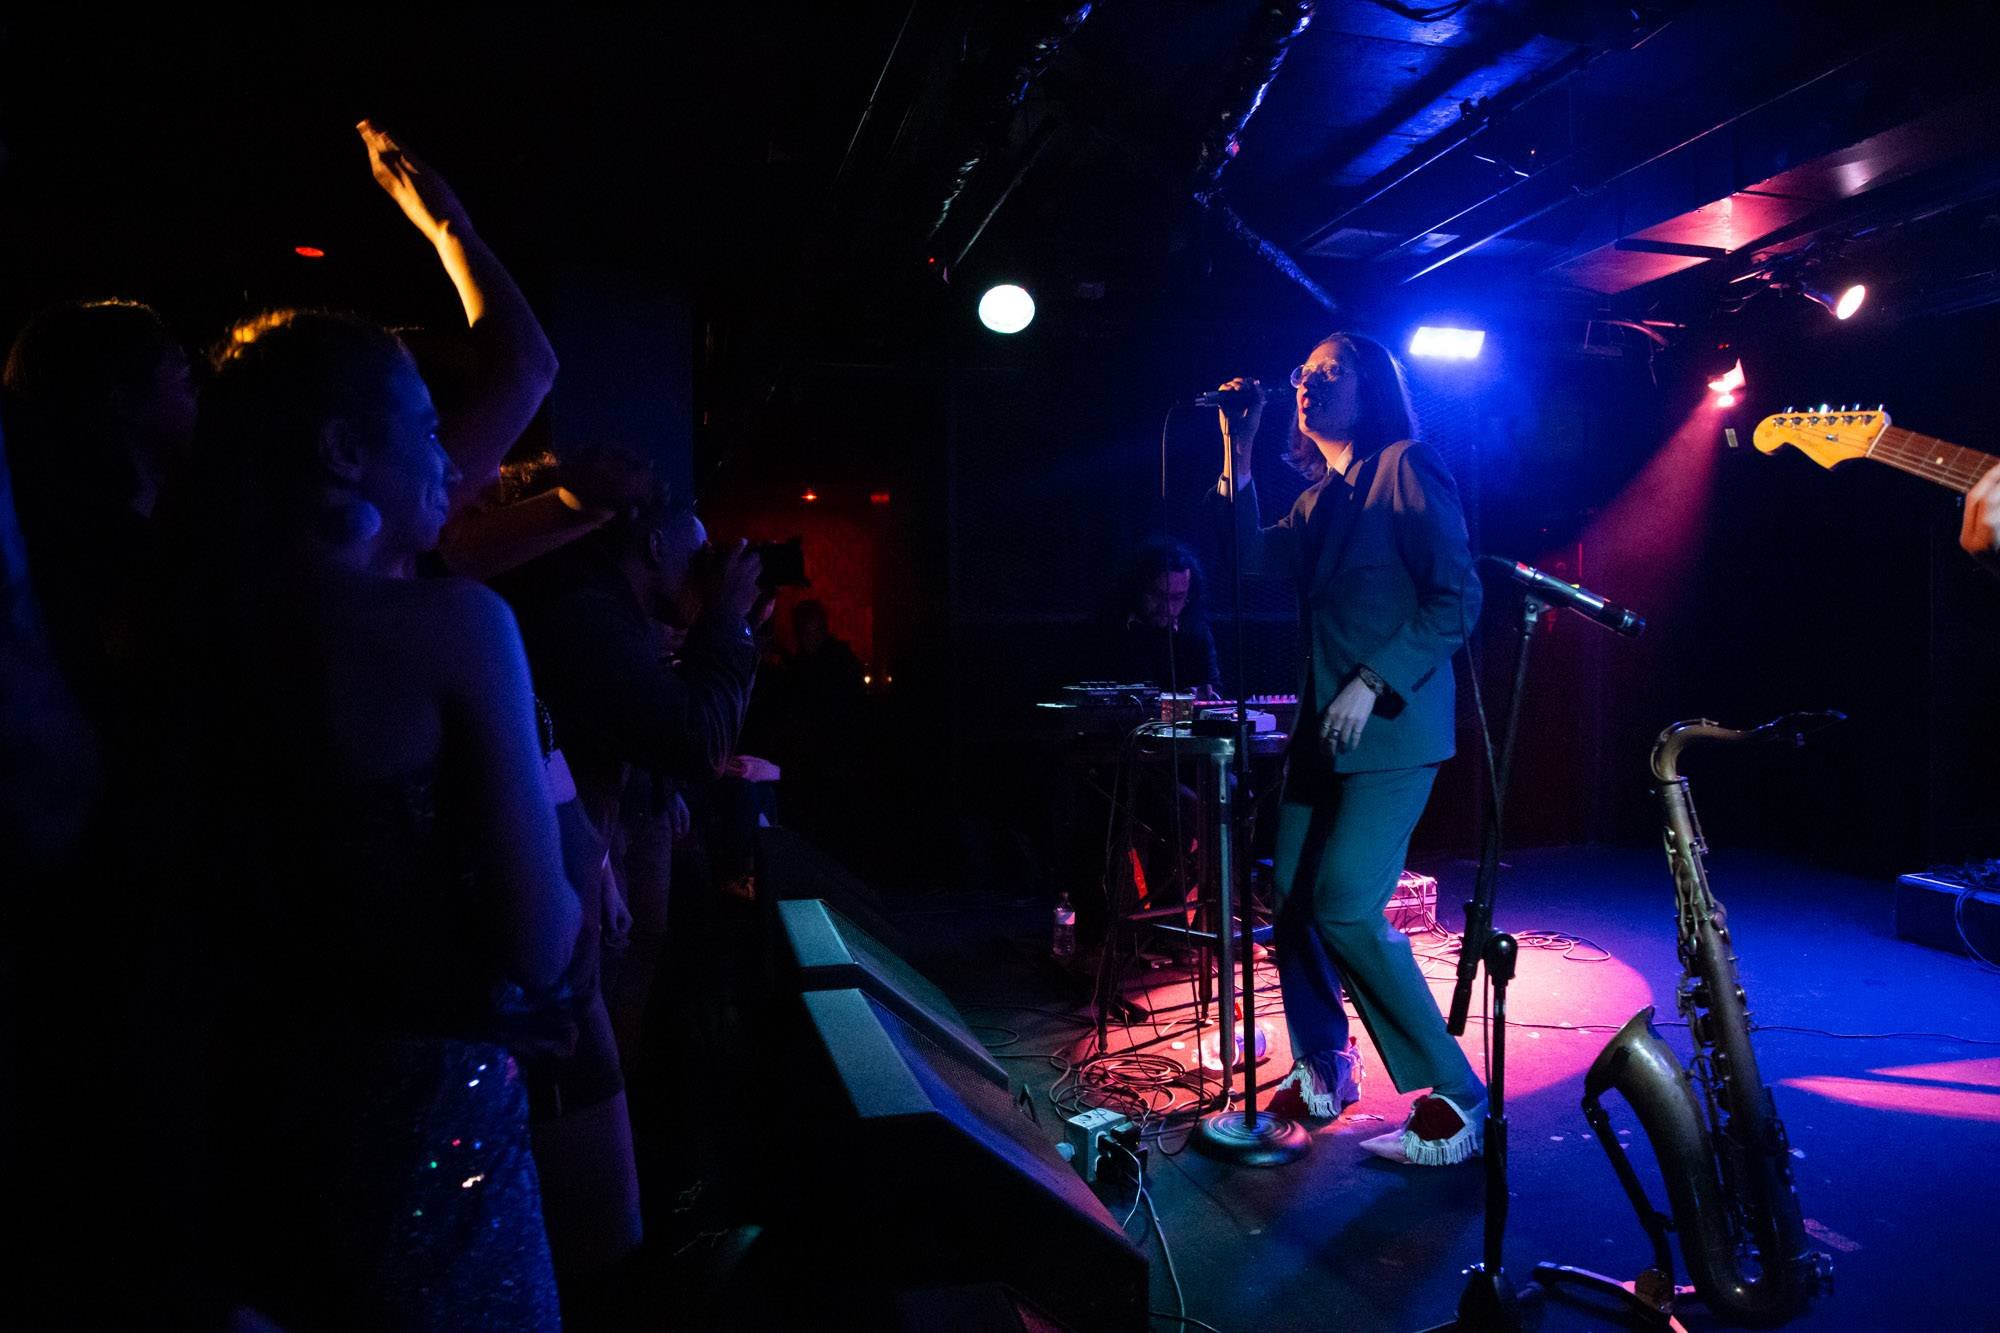 Mr. Twin Sister at the Biltmore Cabaret, Vancouver, Nov 11 2018. Kirk Chantraine photo.